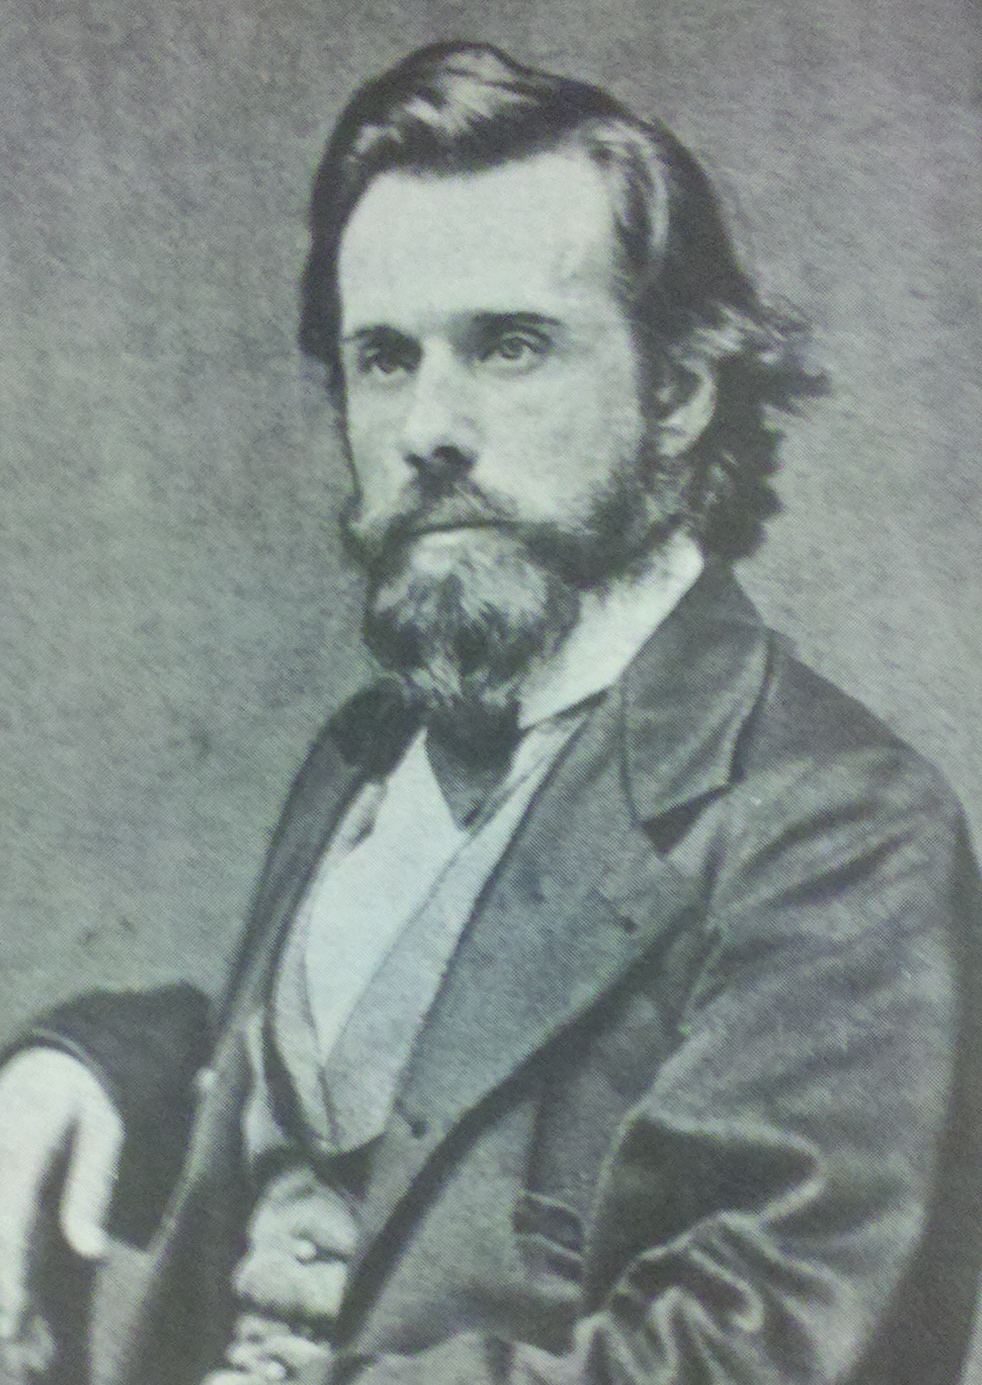 image of B.F. Kendall, first Territorial Librarian of Washington, 1853-1857